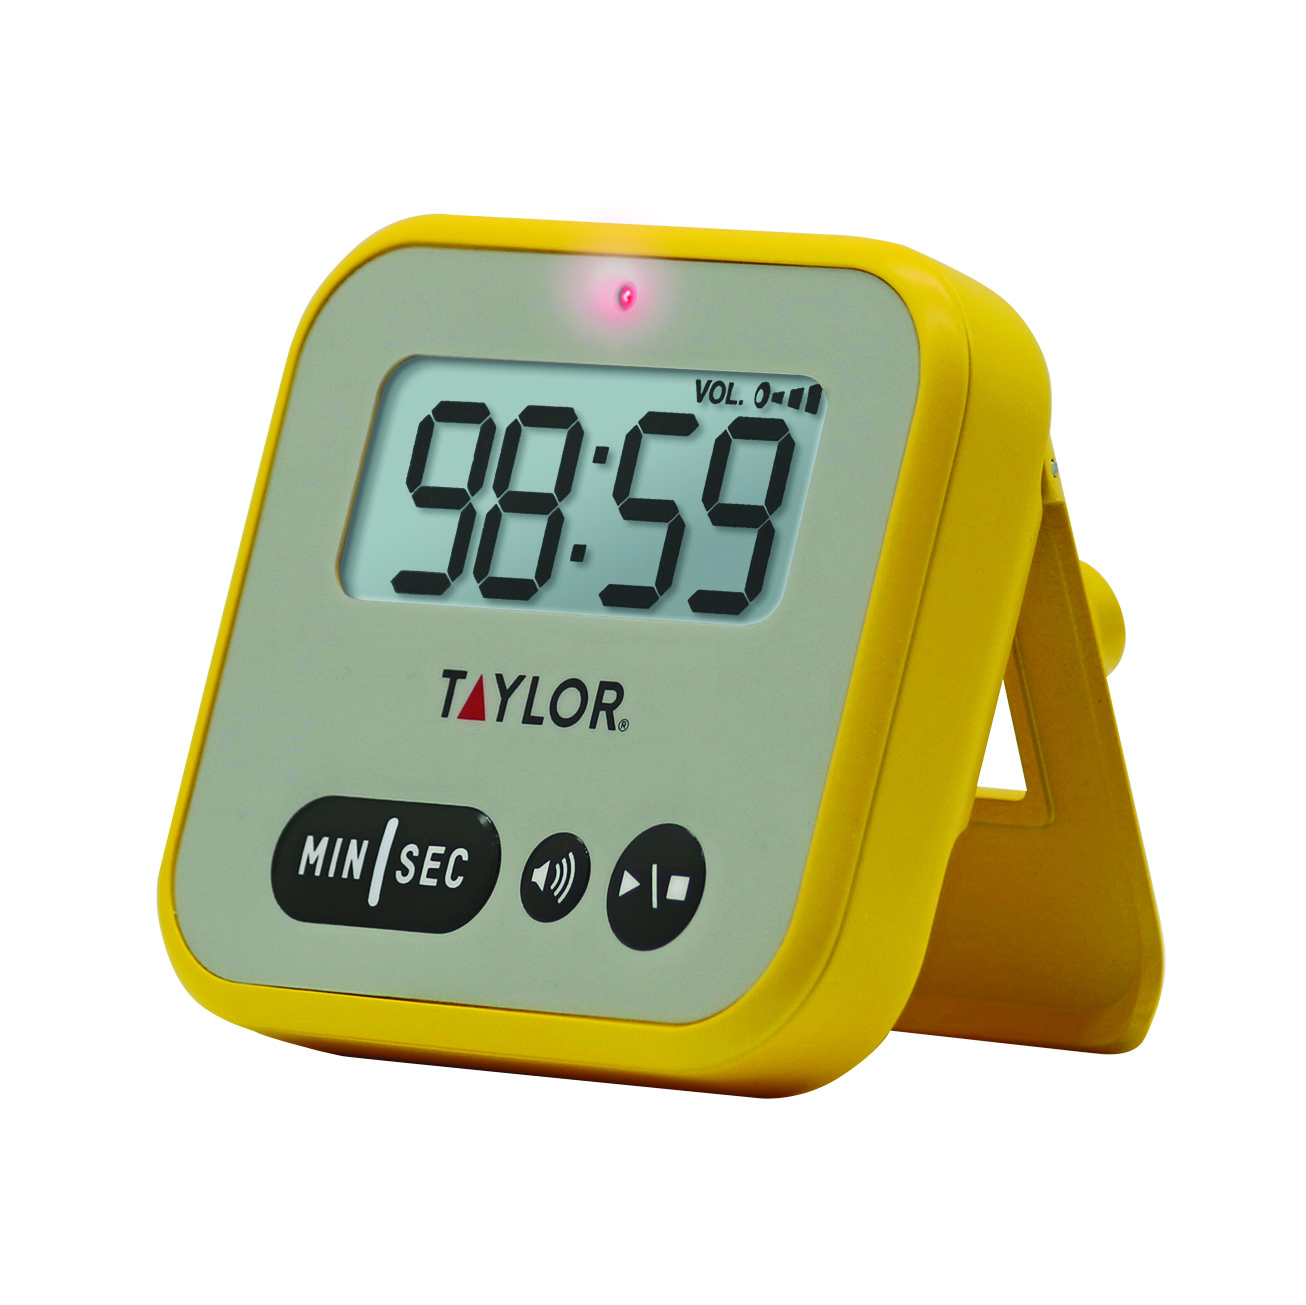 Taylor Precision 5817FS timer, electronic